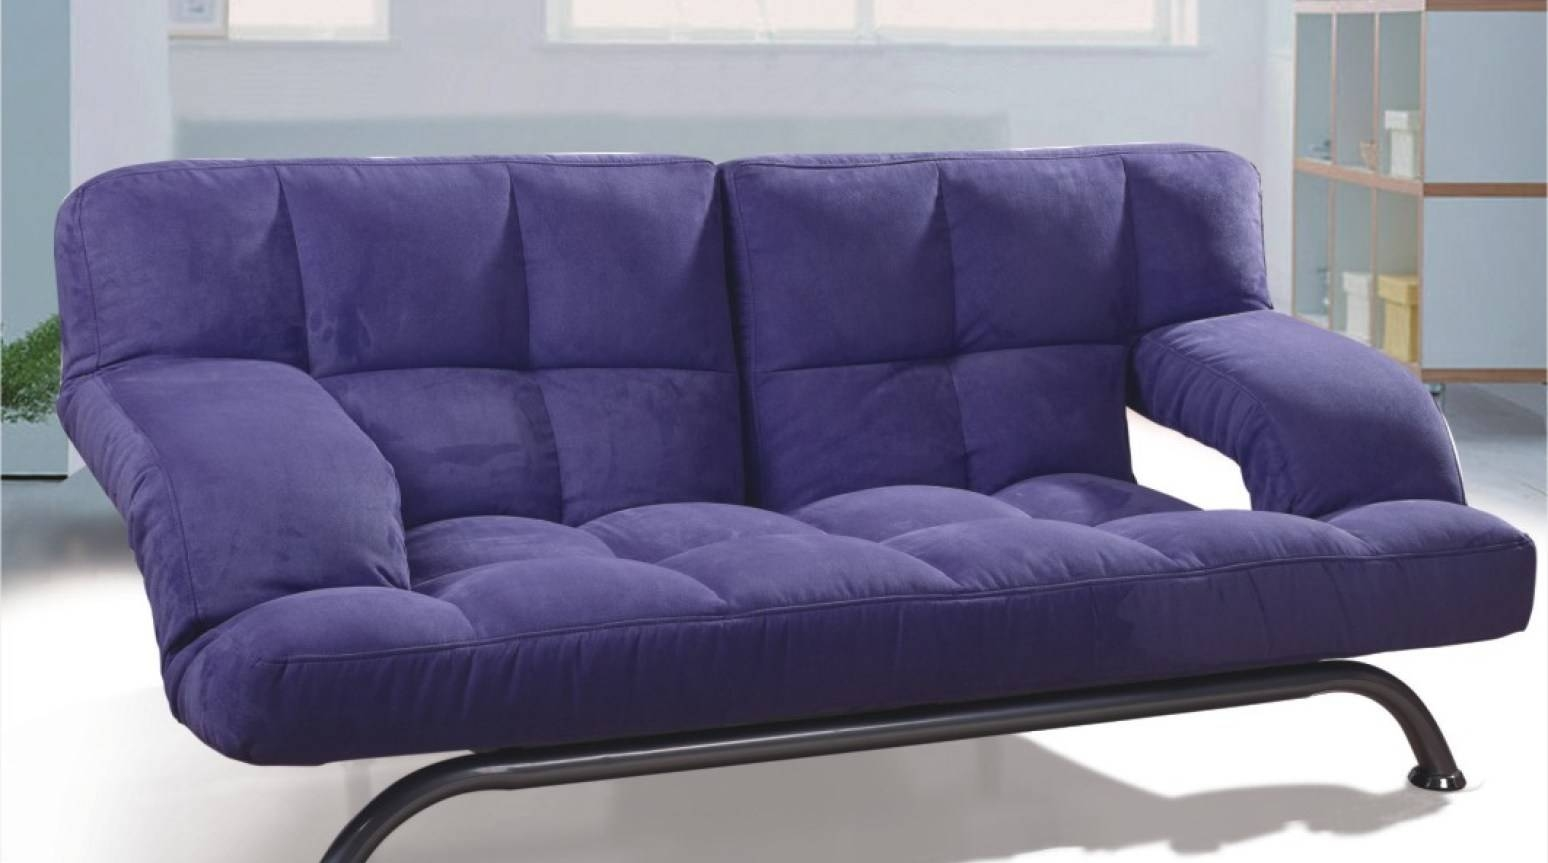 Sofa : Thrilling Purple Chesterfield Sofa Bed Modern Purple Fabric with regard to Purple Chesterfield Sofas (Image 11 of 15)